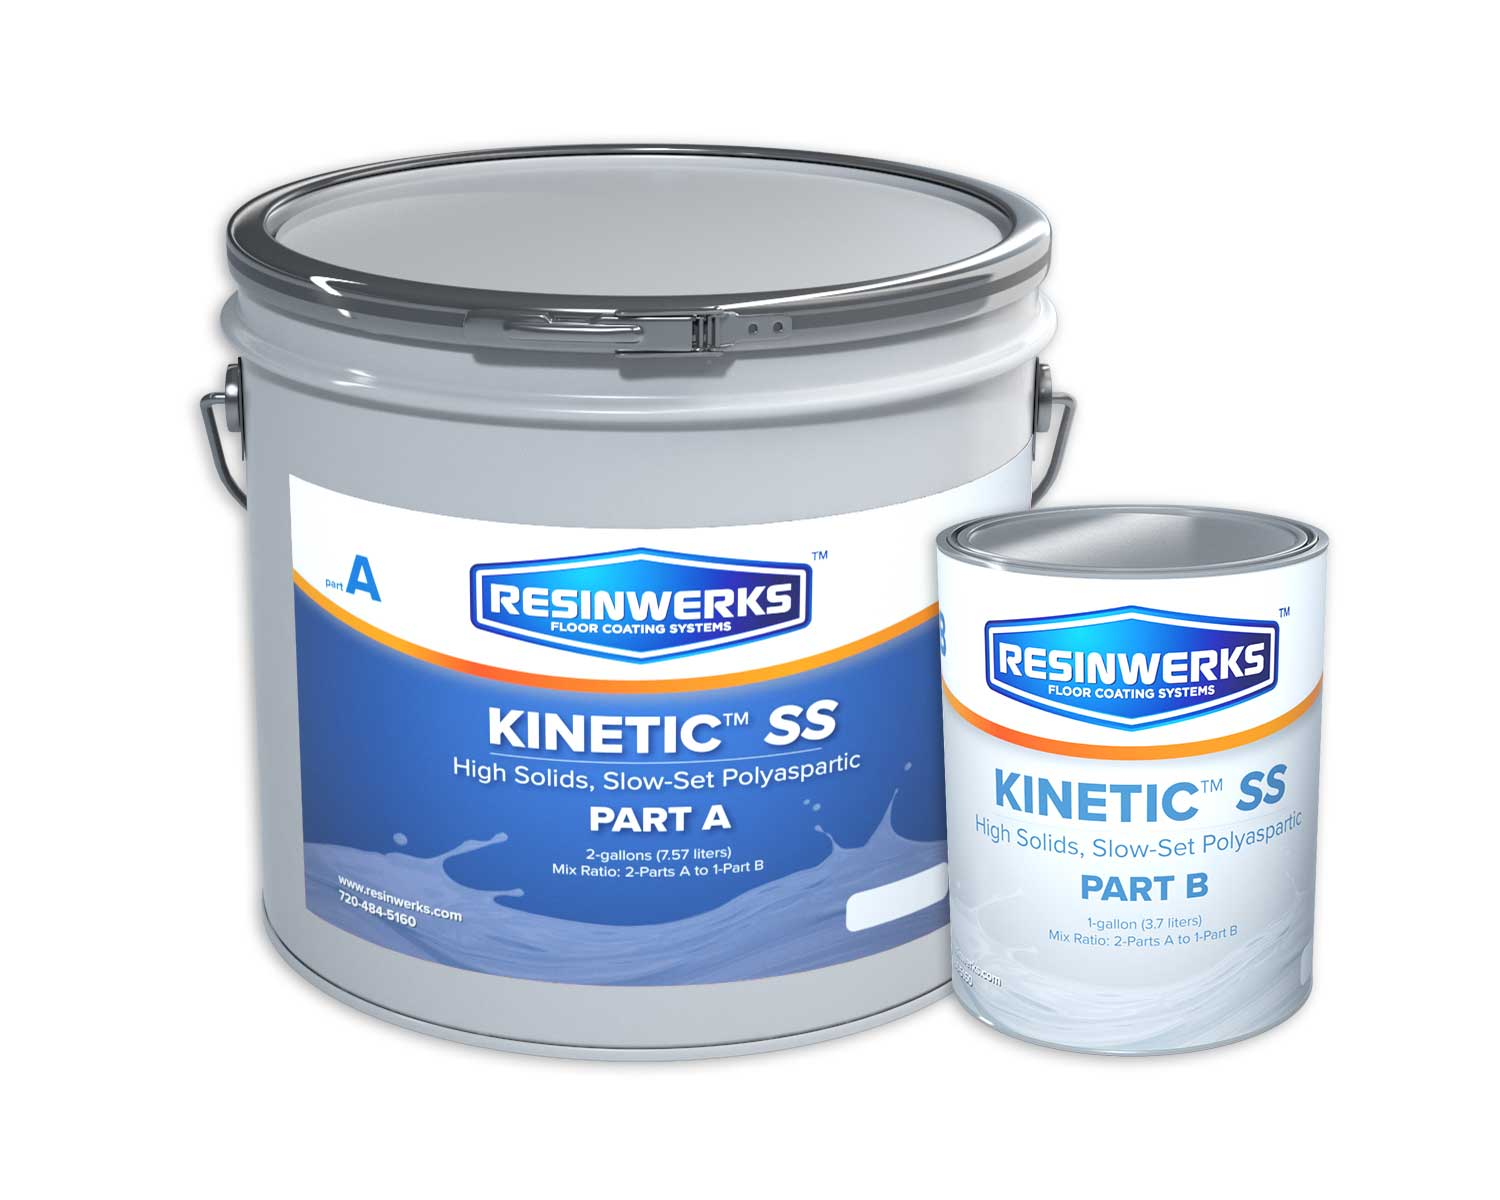 Resinwerks Kinetic HS Slow Cure Polyaspartic Coating 3-Gallon Kit